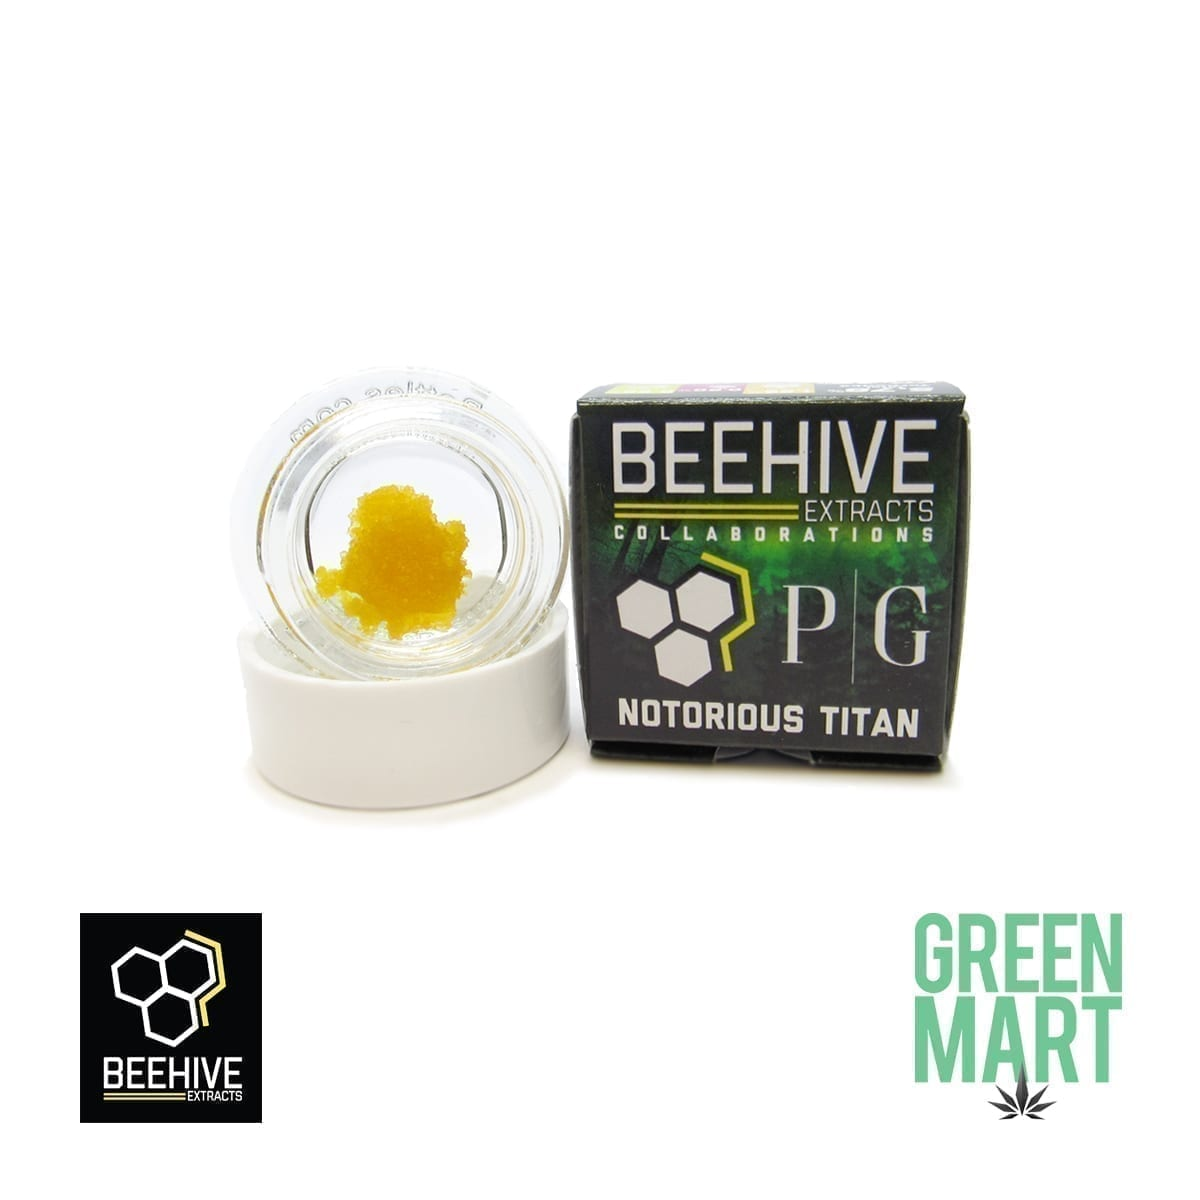 Bee Hive Extracts - Notorious Titan